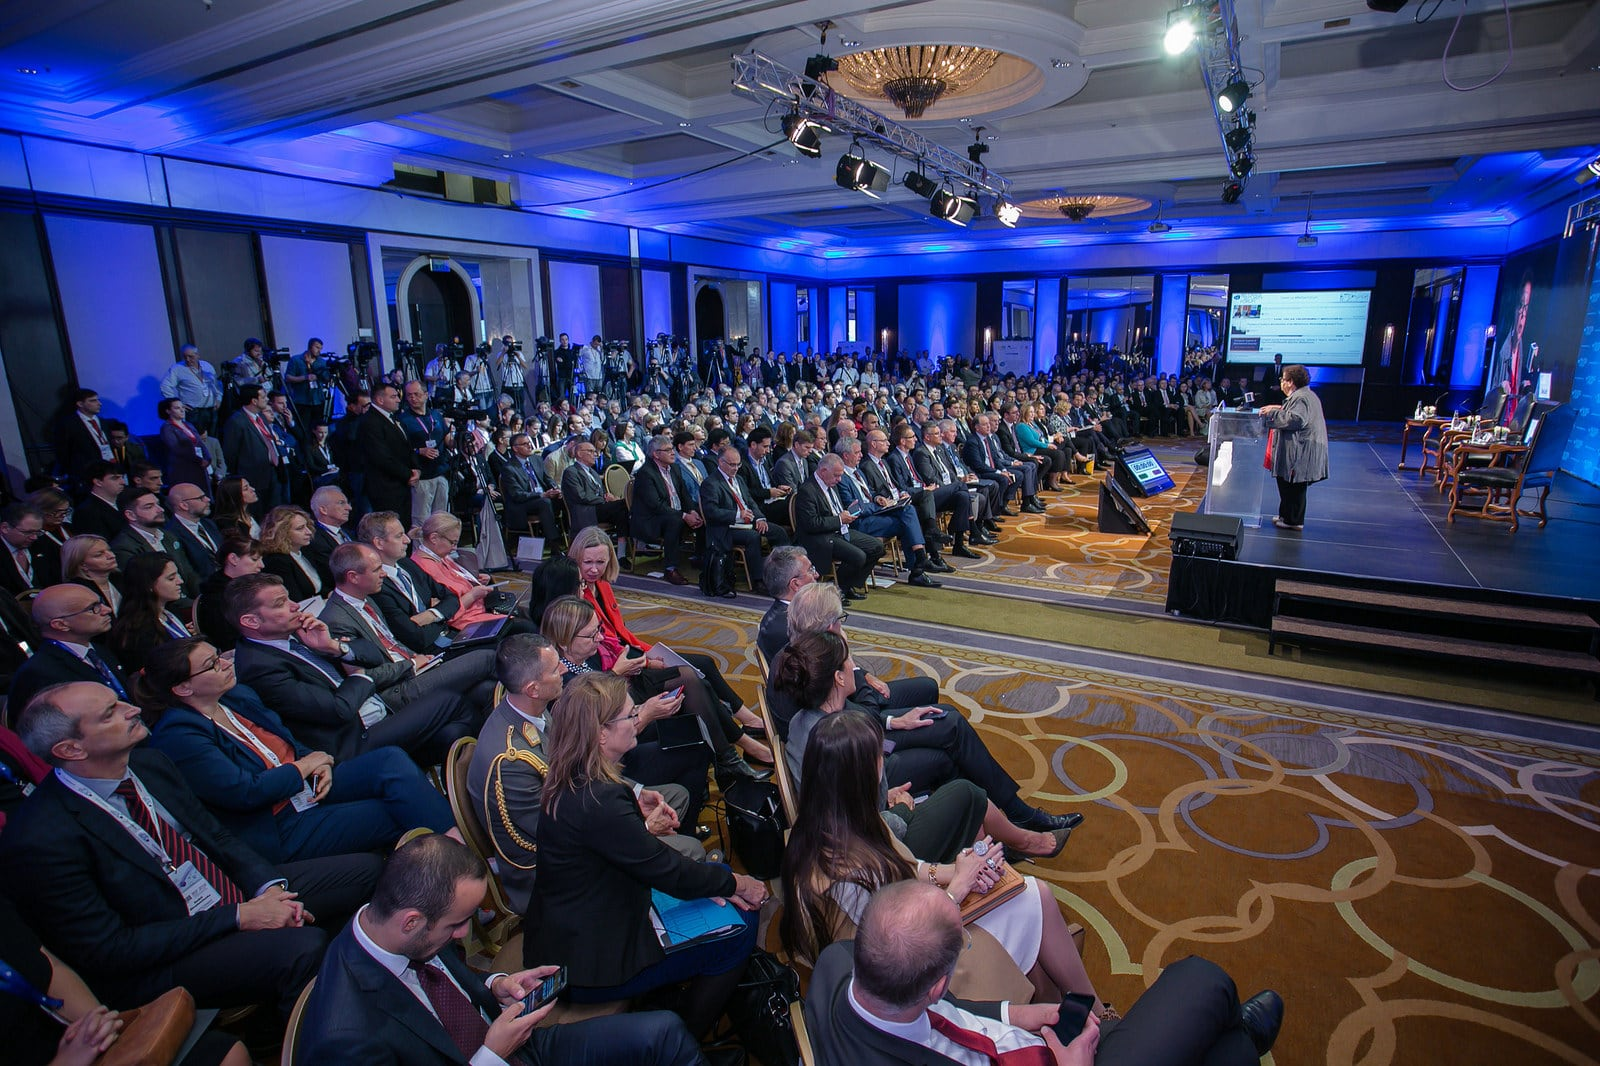 Belgrade Security Forum 2019: Striving for Justice in a Divided World